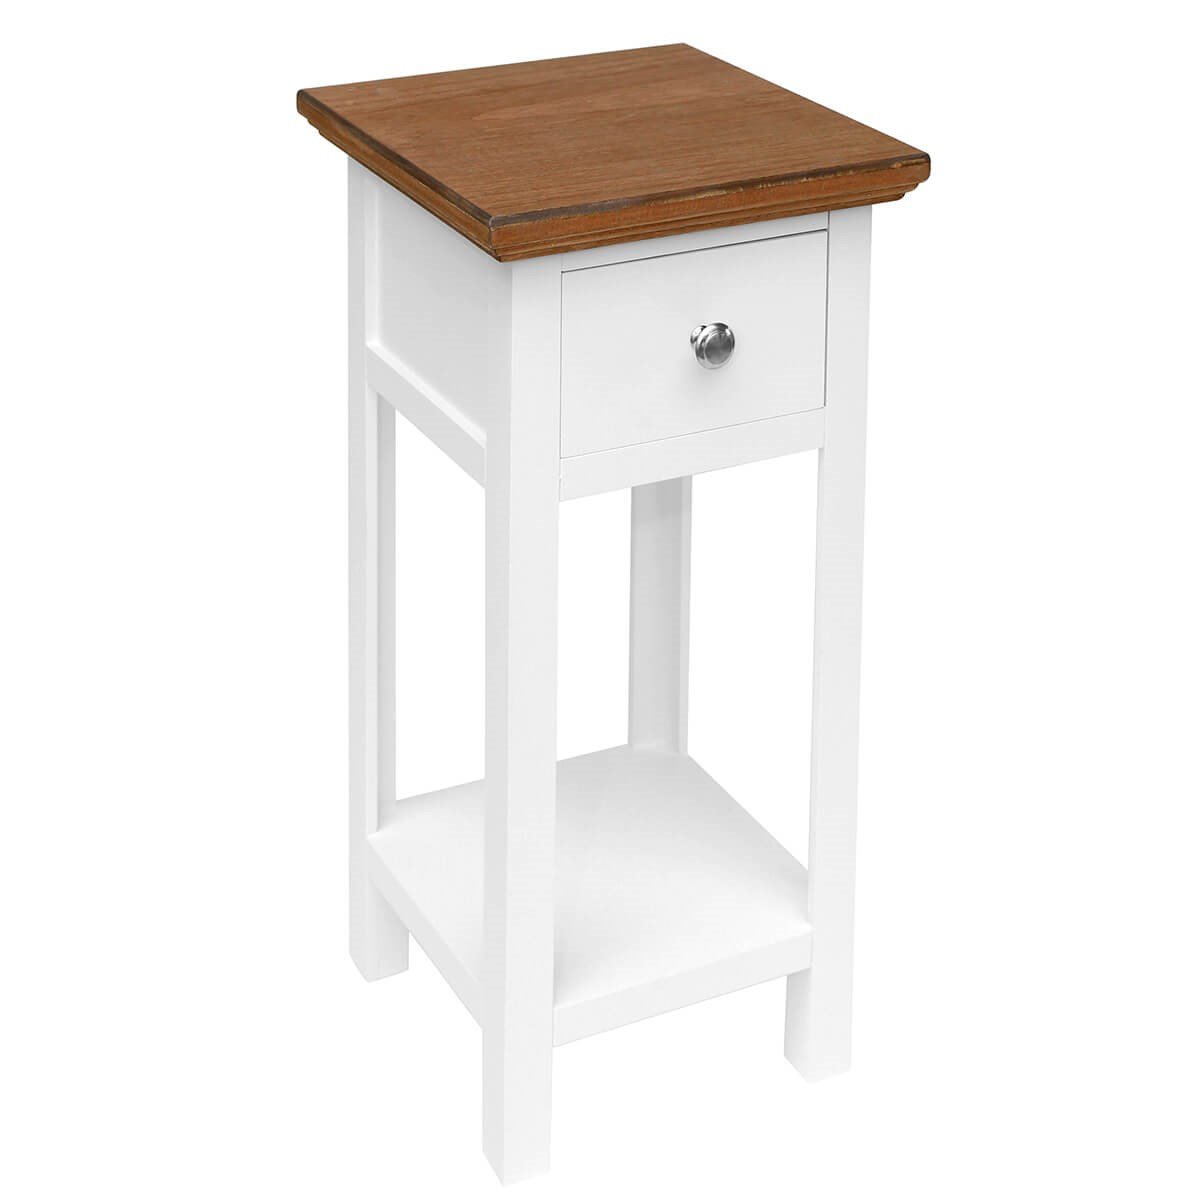 White Bedside Table with Wooden Top